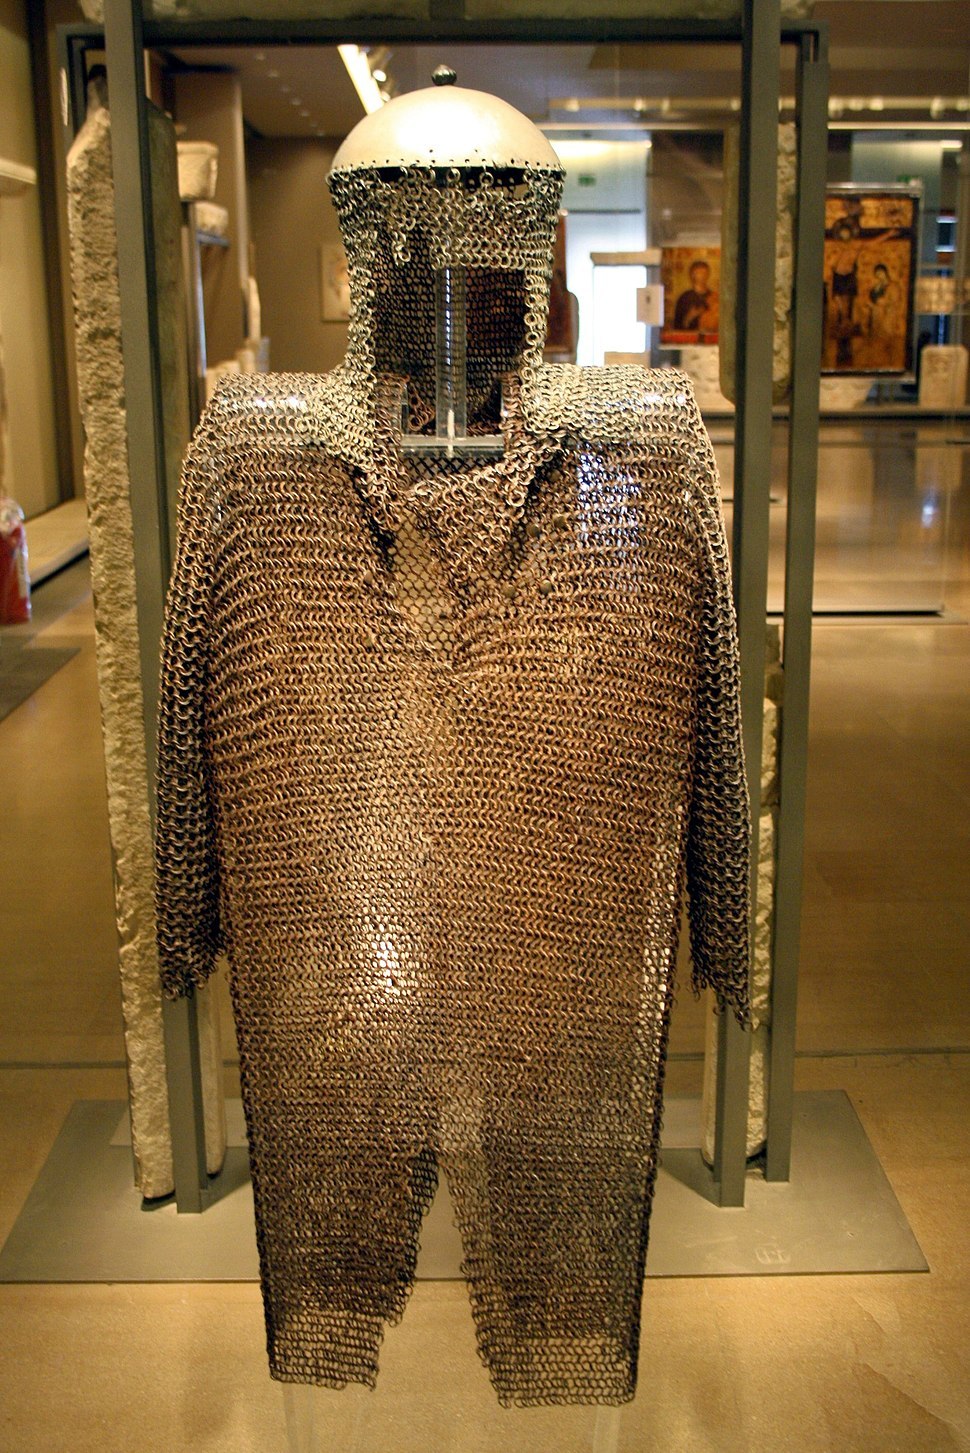 1954 - Byzantine Museum, Athens - Iron chain mail - Photo by Giovanni Dall'Orto, Nov 12 2009